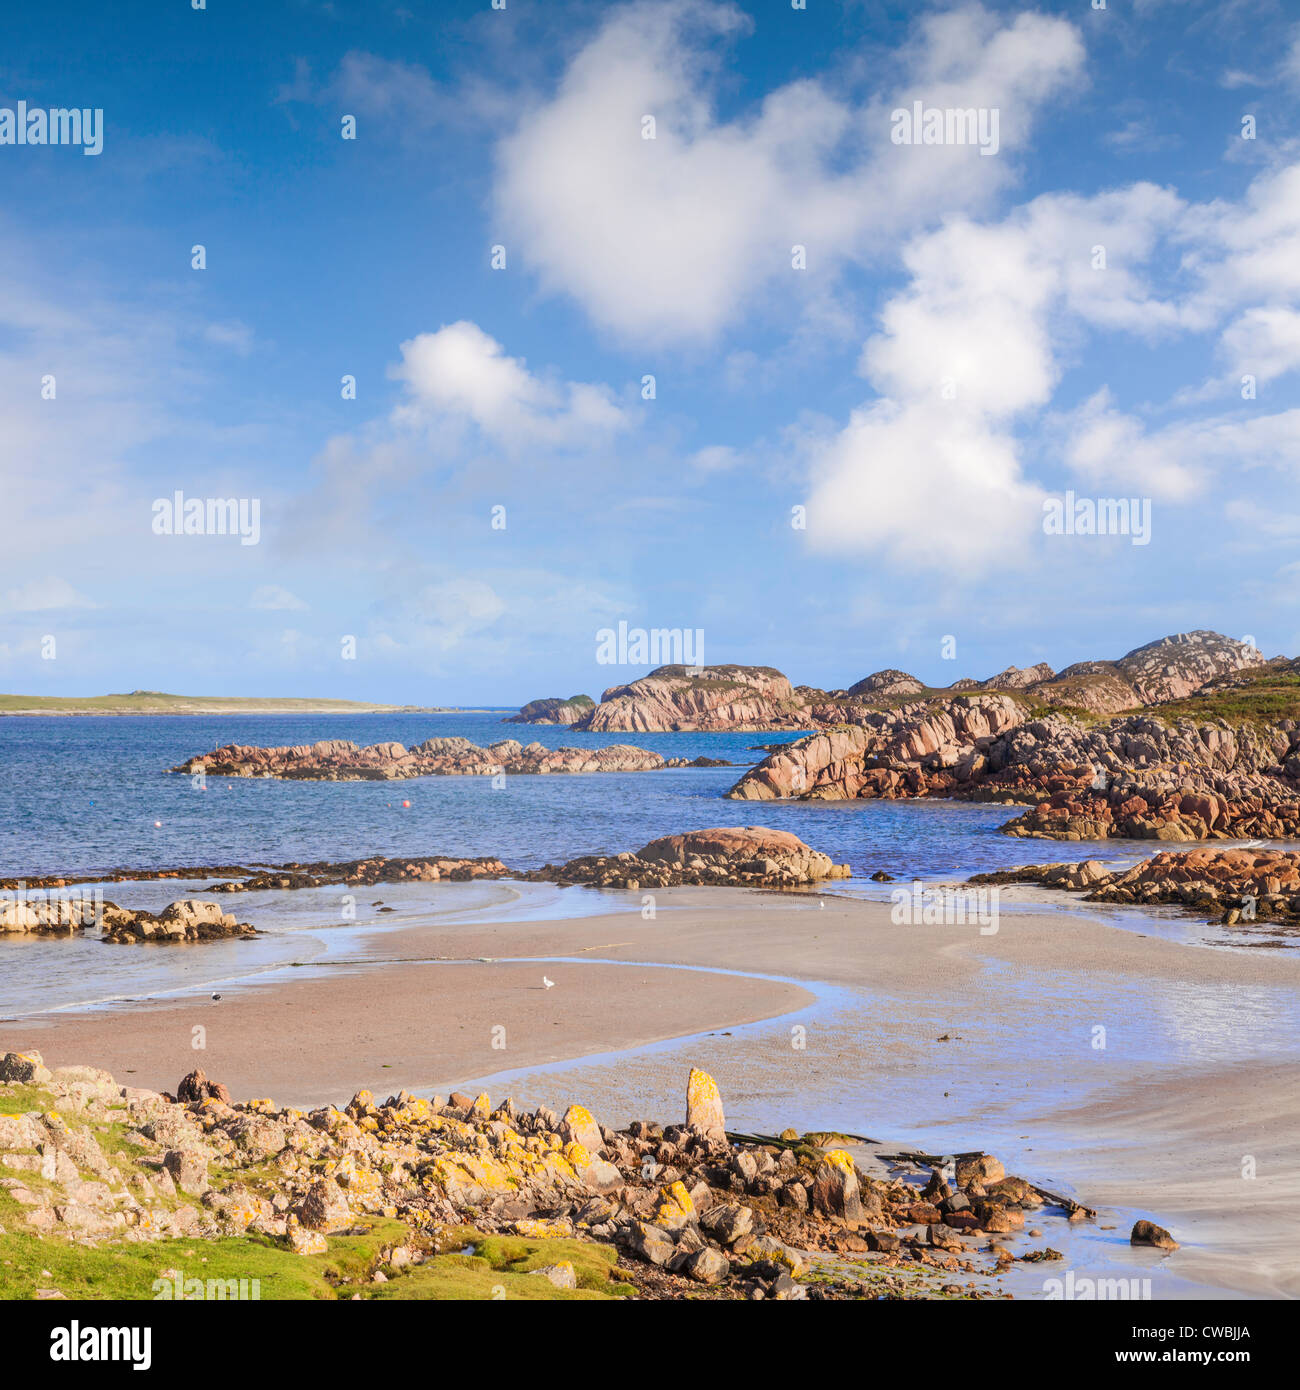 The beach at Fionnphort, Mull, Scotland with Iona in the background. Fionnphort is the ferry terminal for Iona. - Stock Image